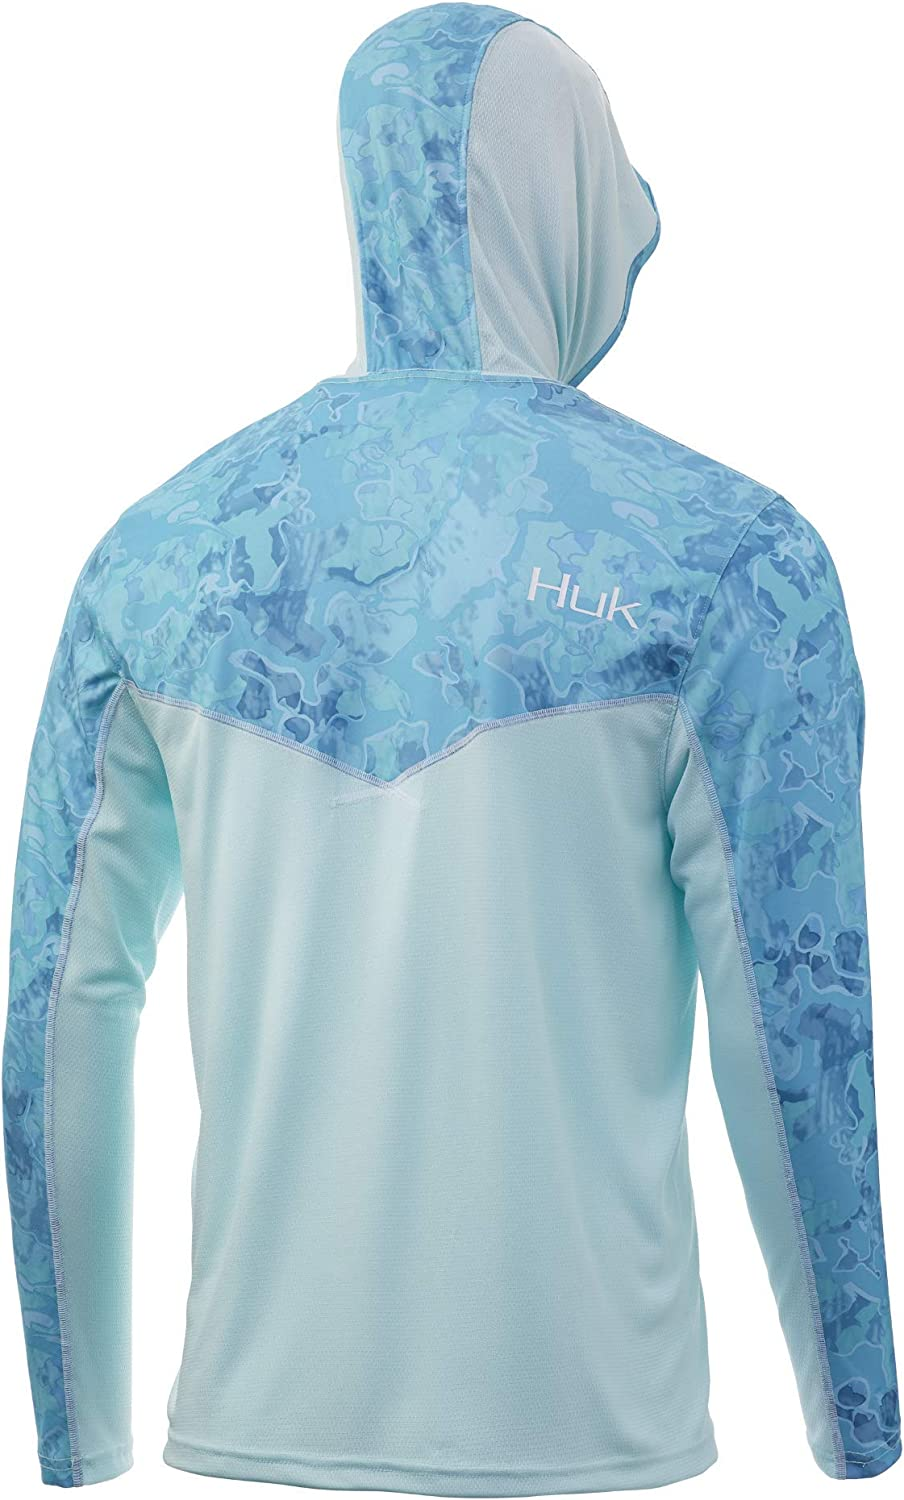 : HUK Men's Icon X Camo Hoodie: Clothing